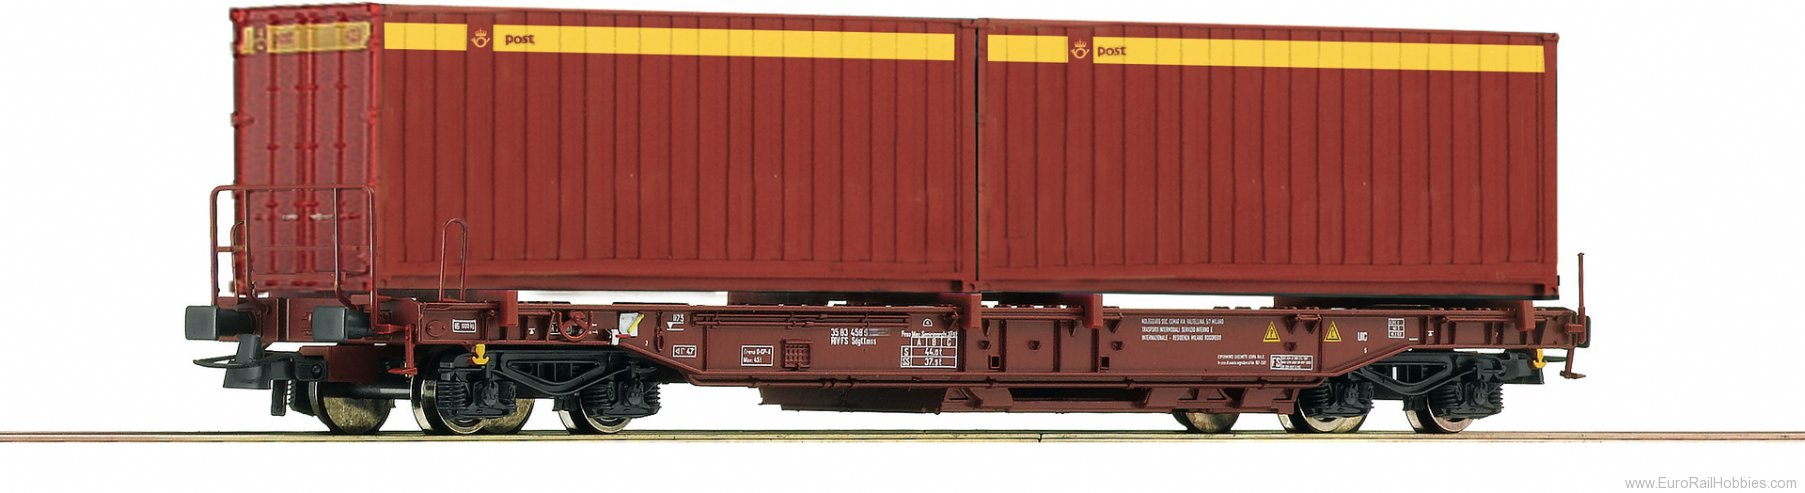 Roco 76753 Standard pocket wagon, SJ